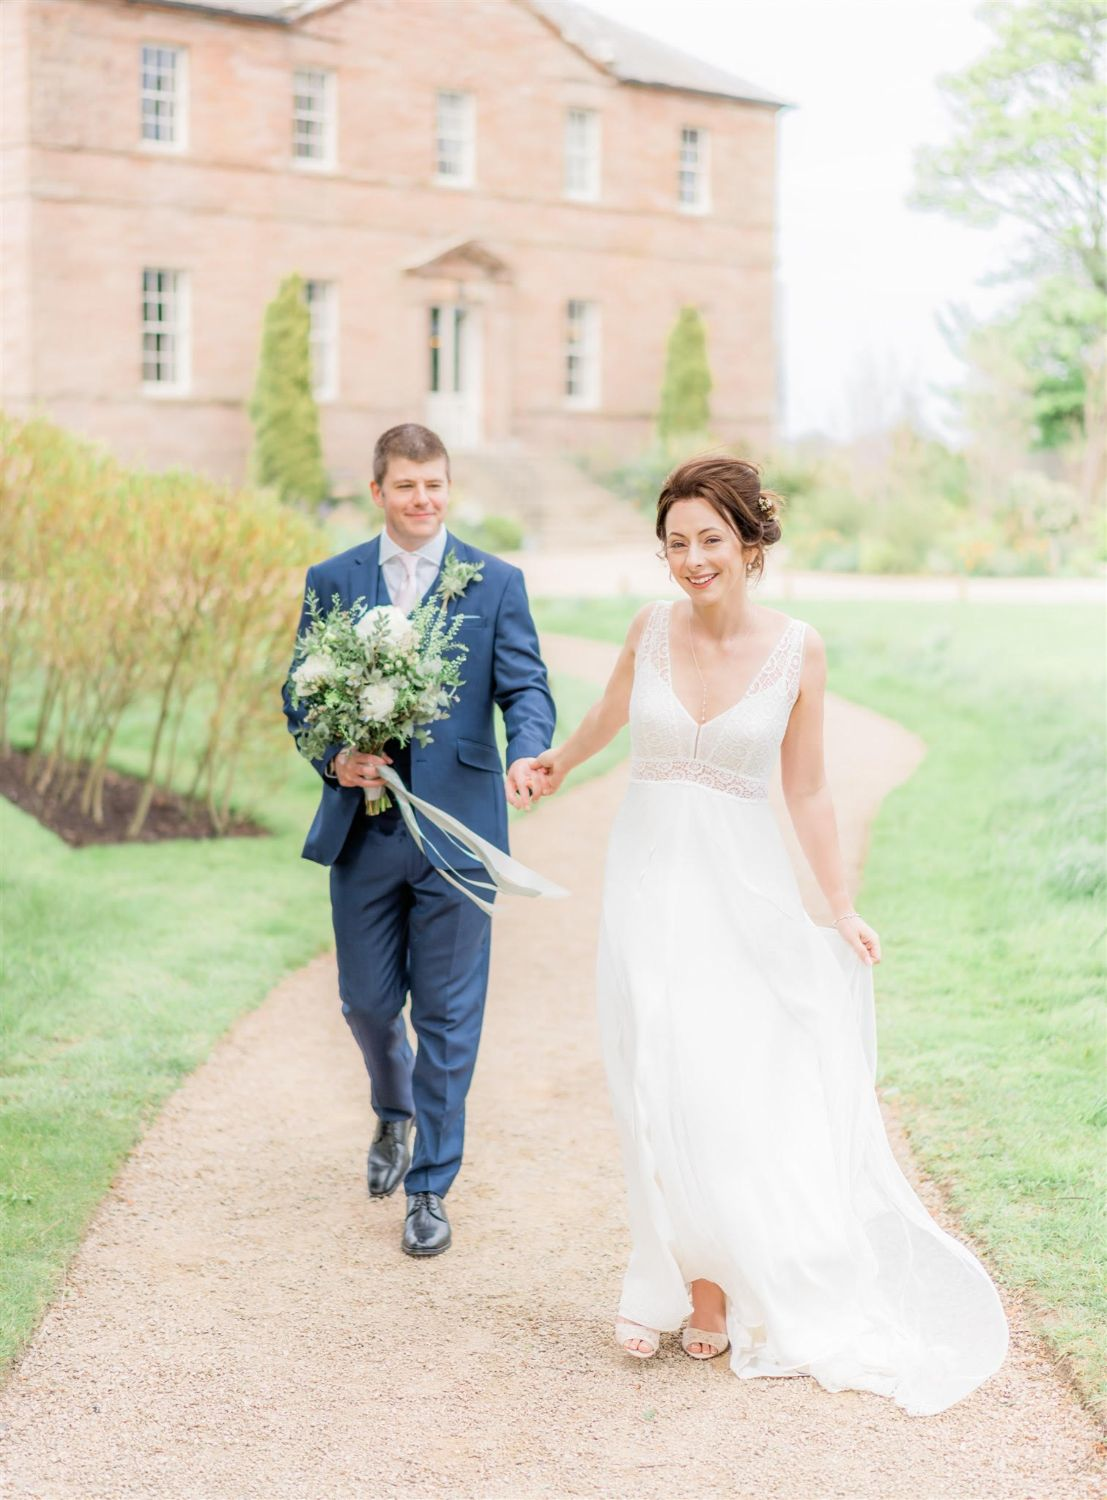 Real-Brides-Nottingham-Rembo-Styling-Graal-3